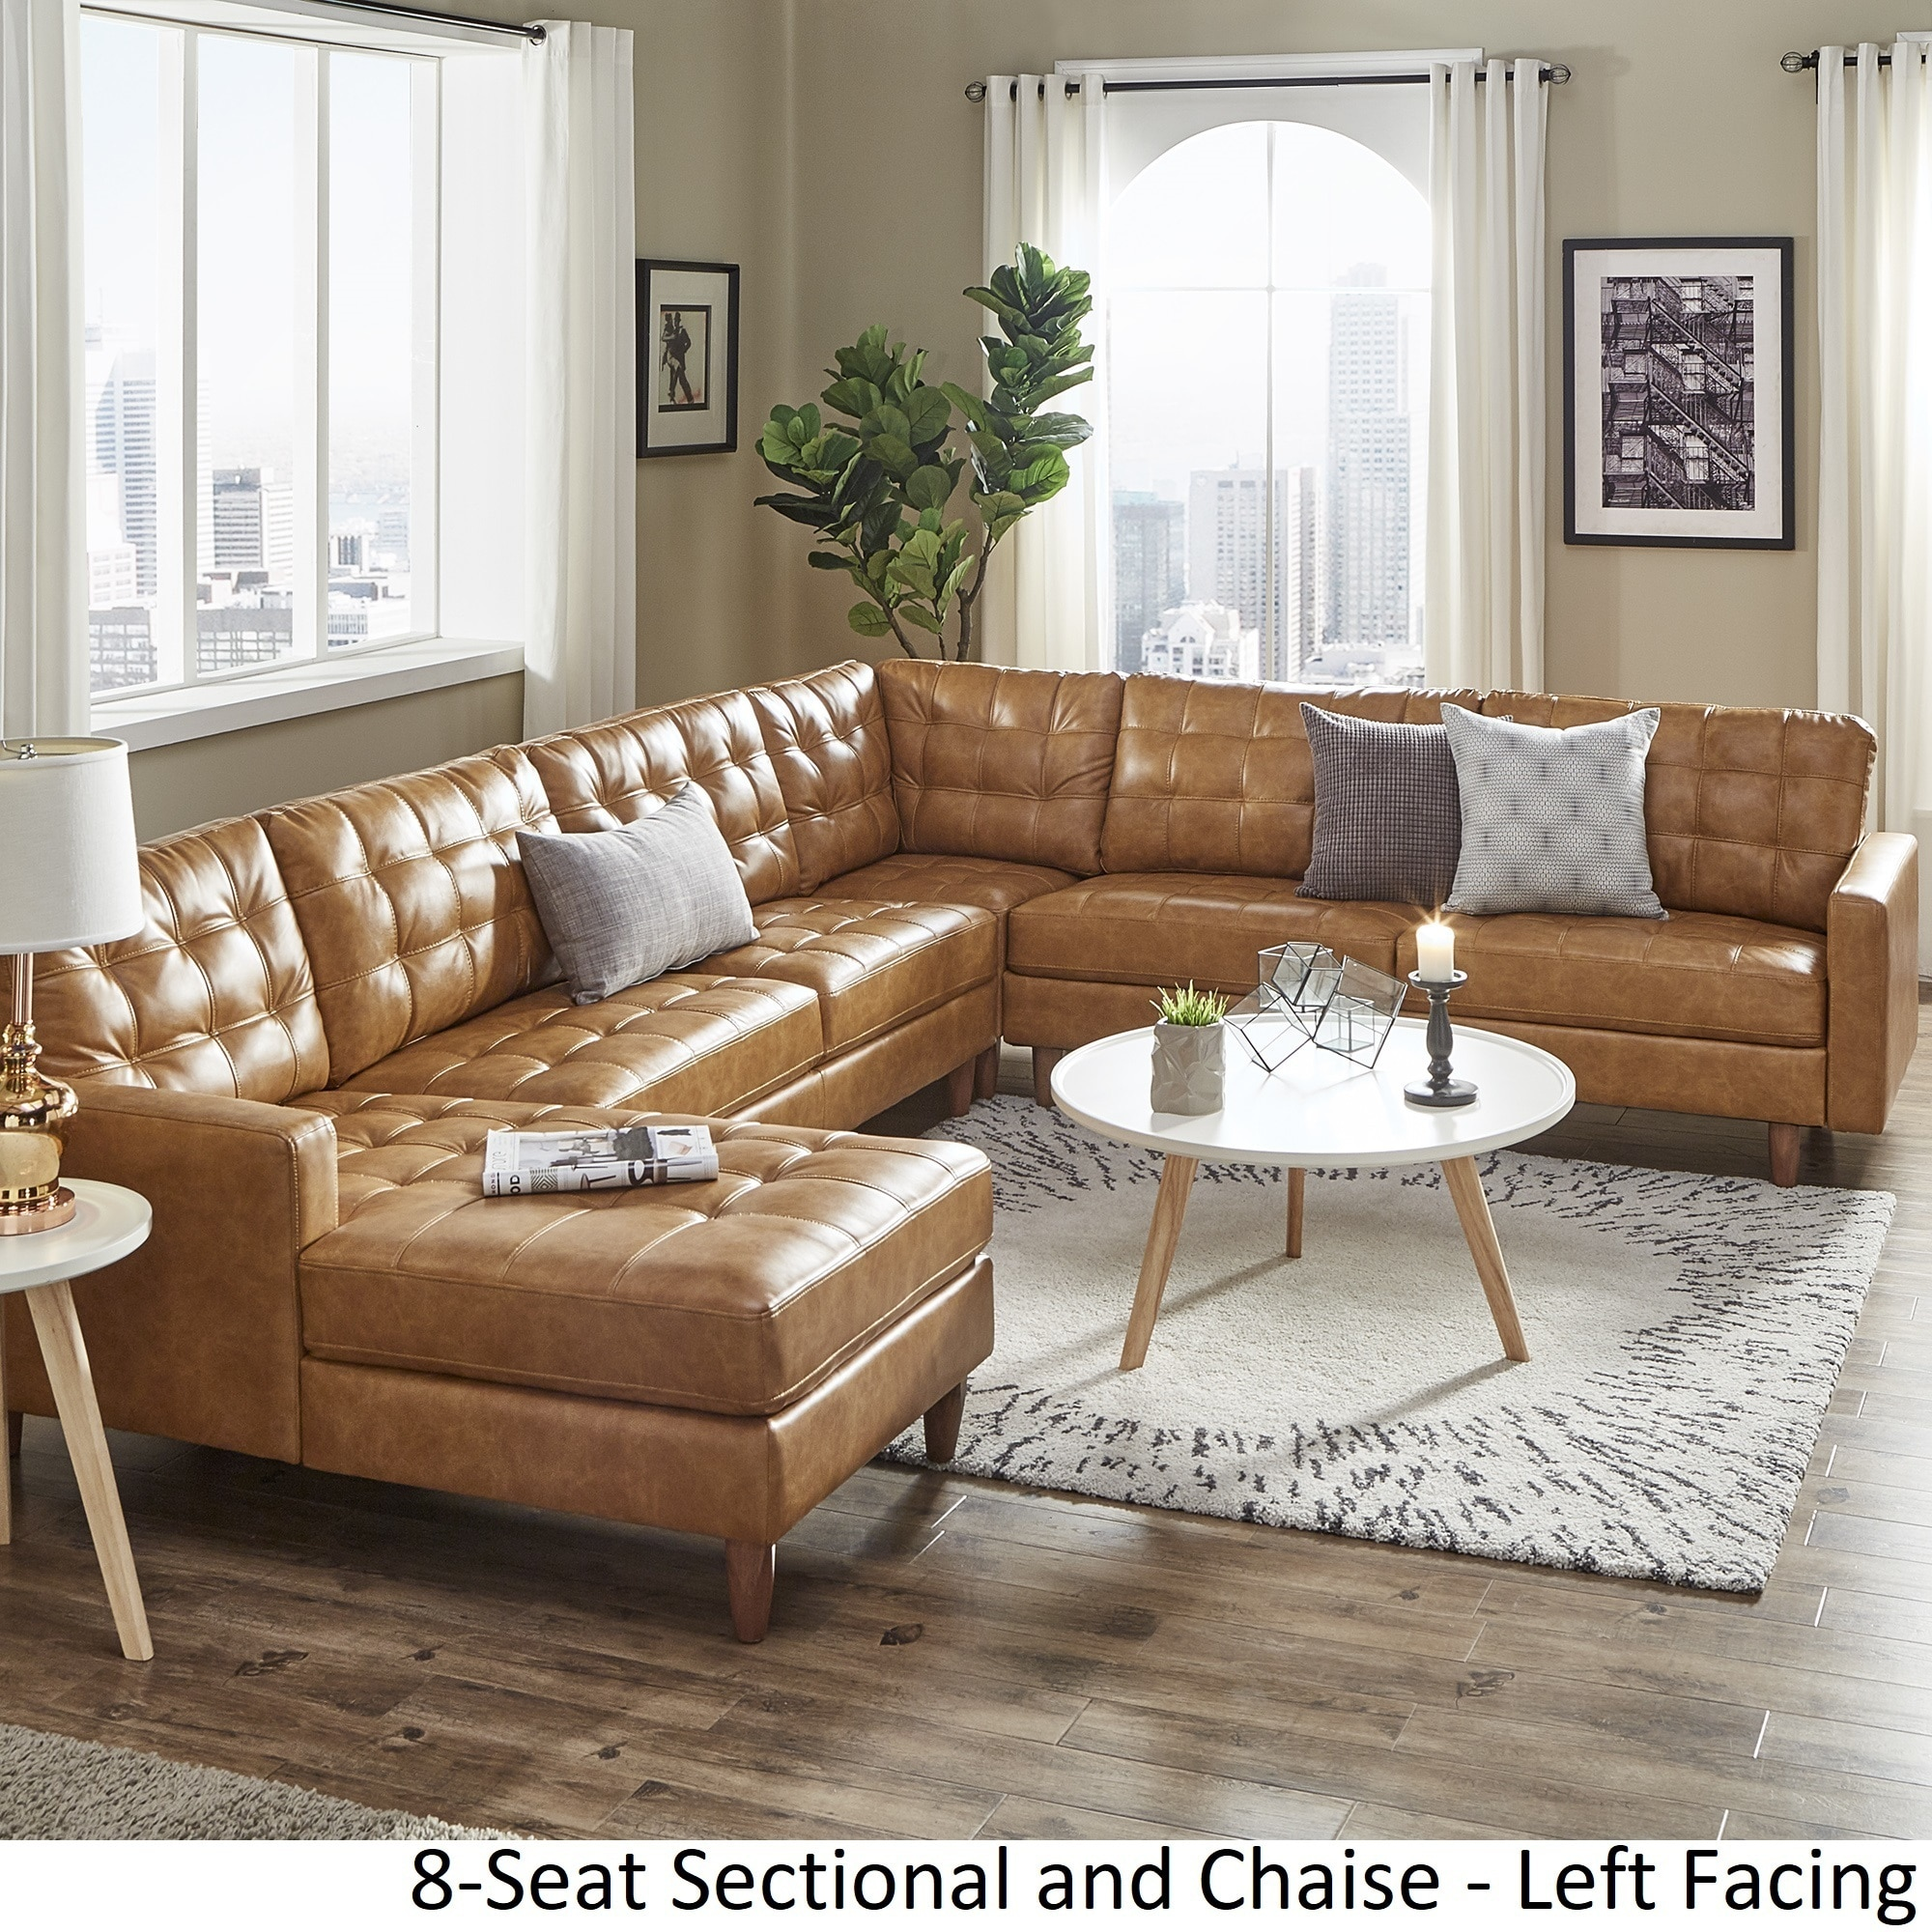 Admirable Odin Caramel Leather Gel L Shape Sectional With Chaise By Inspire Q Modern Caraccident5 Cool Chair Designs And Ideas Caraccident5Info